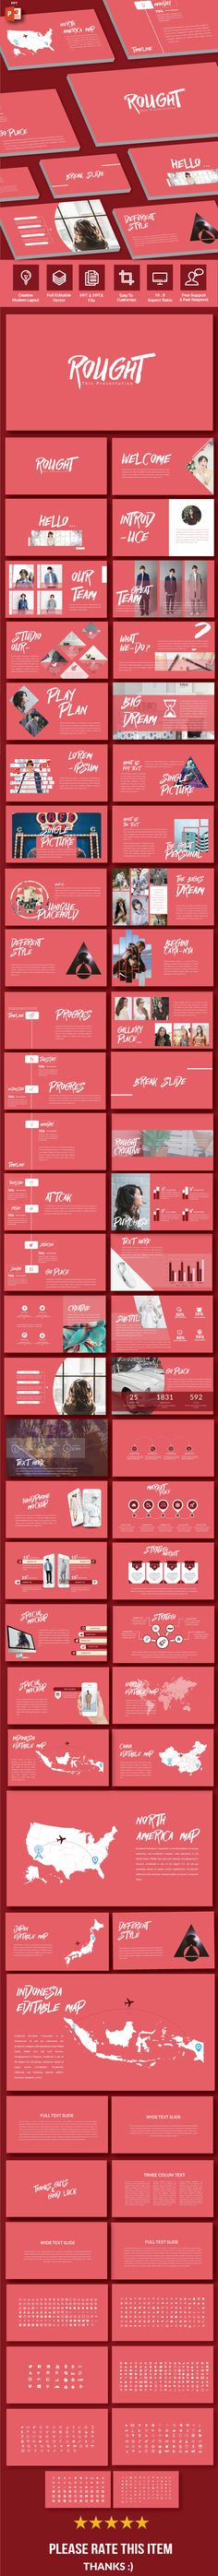 Rought - Multipurpose PowerPoint Template - PowerPoint Templates Presentation Templates